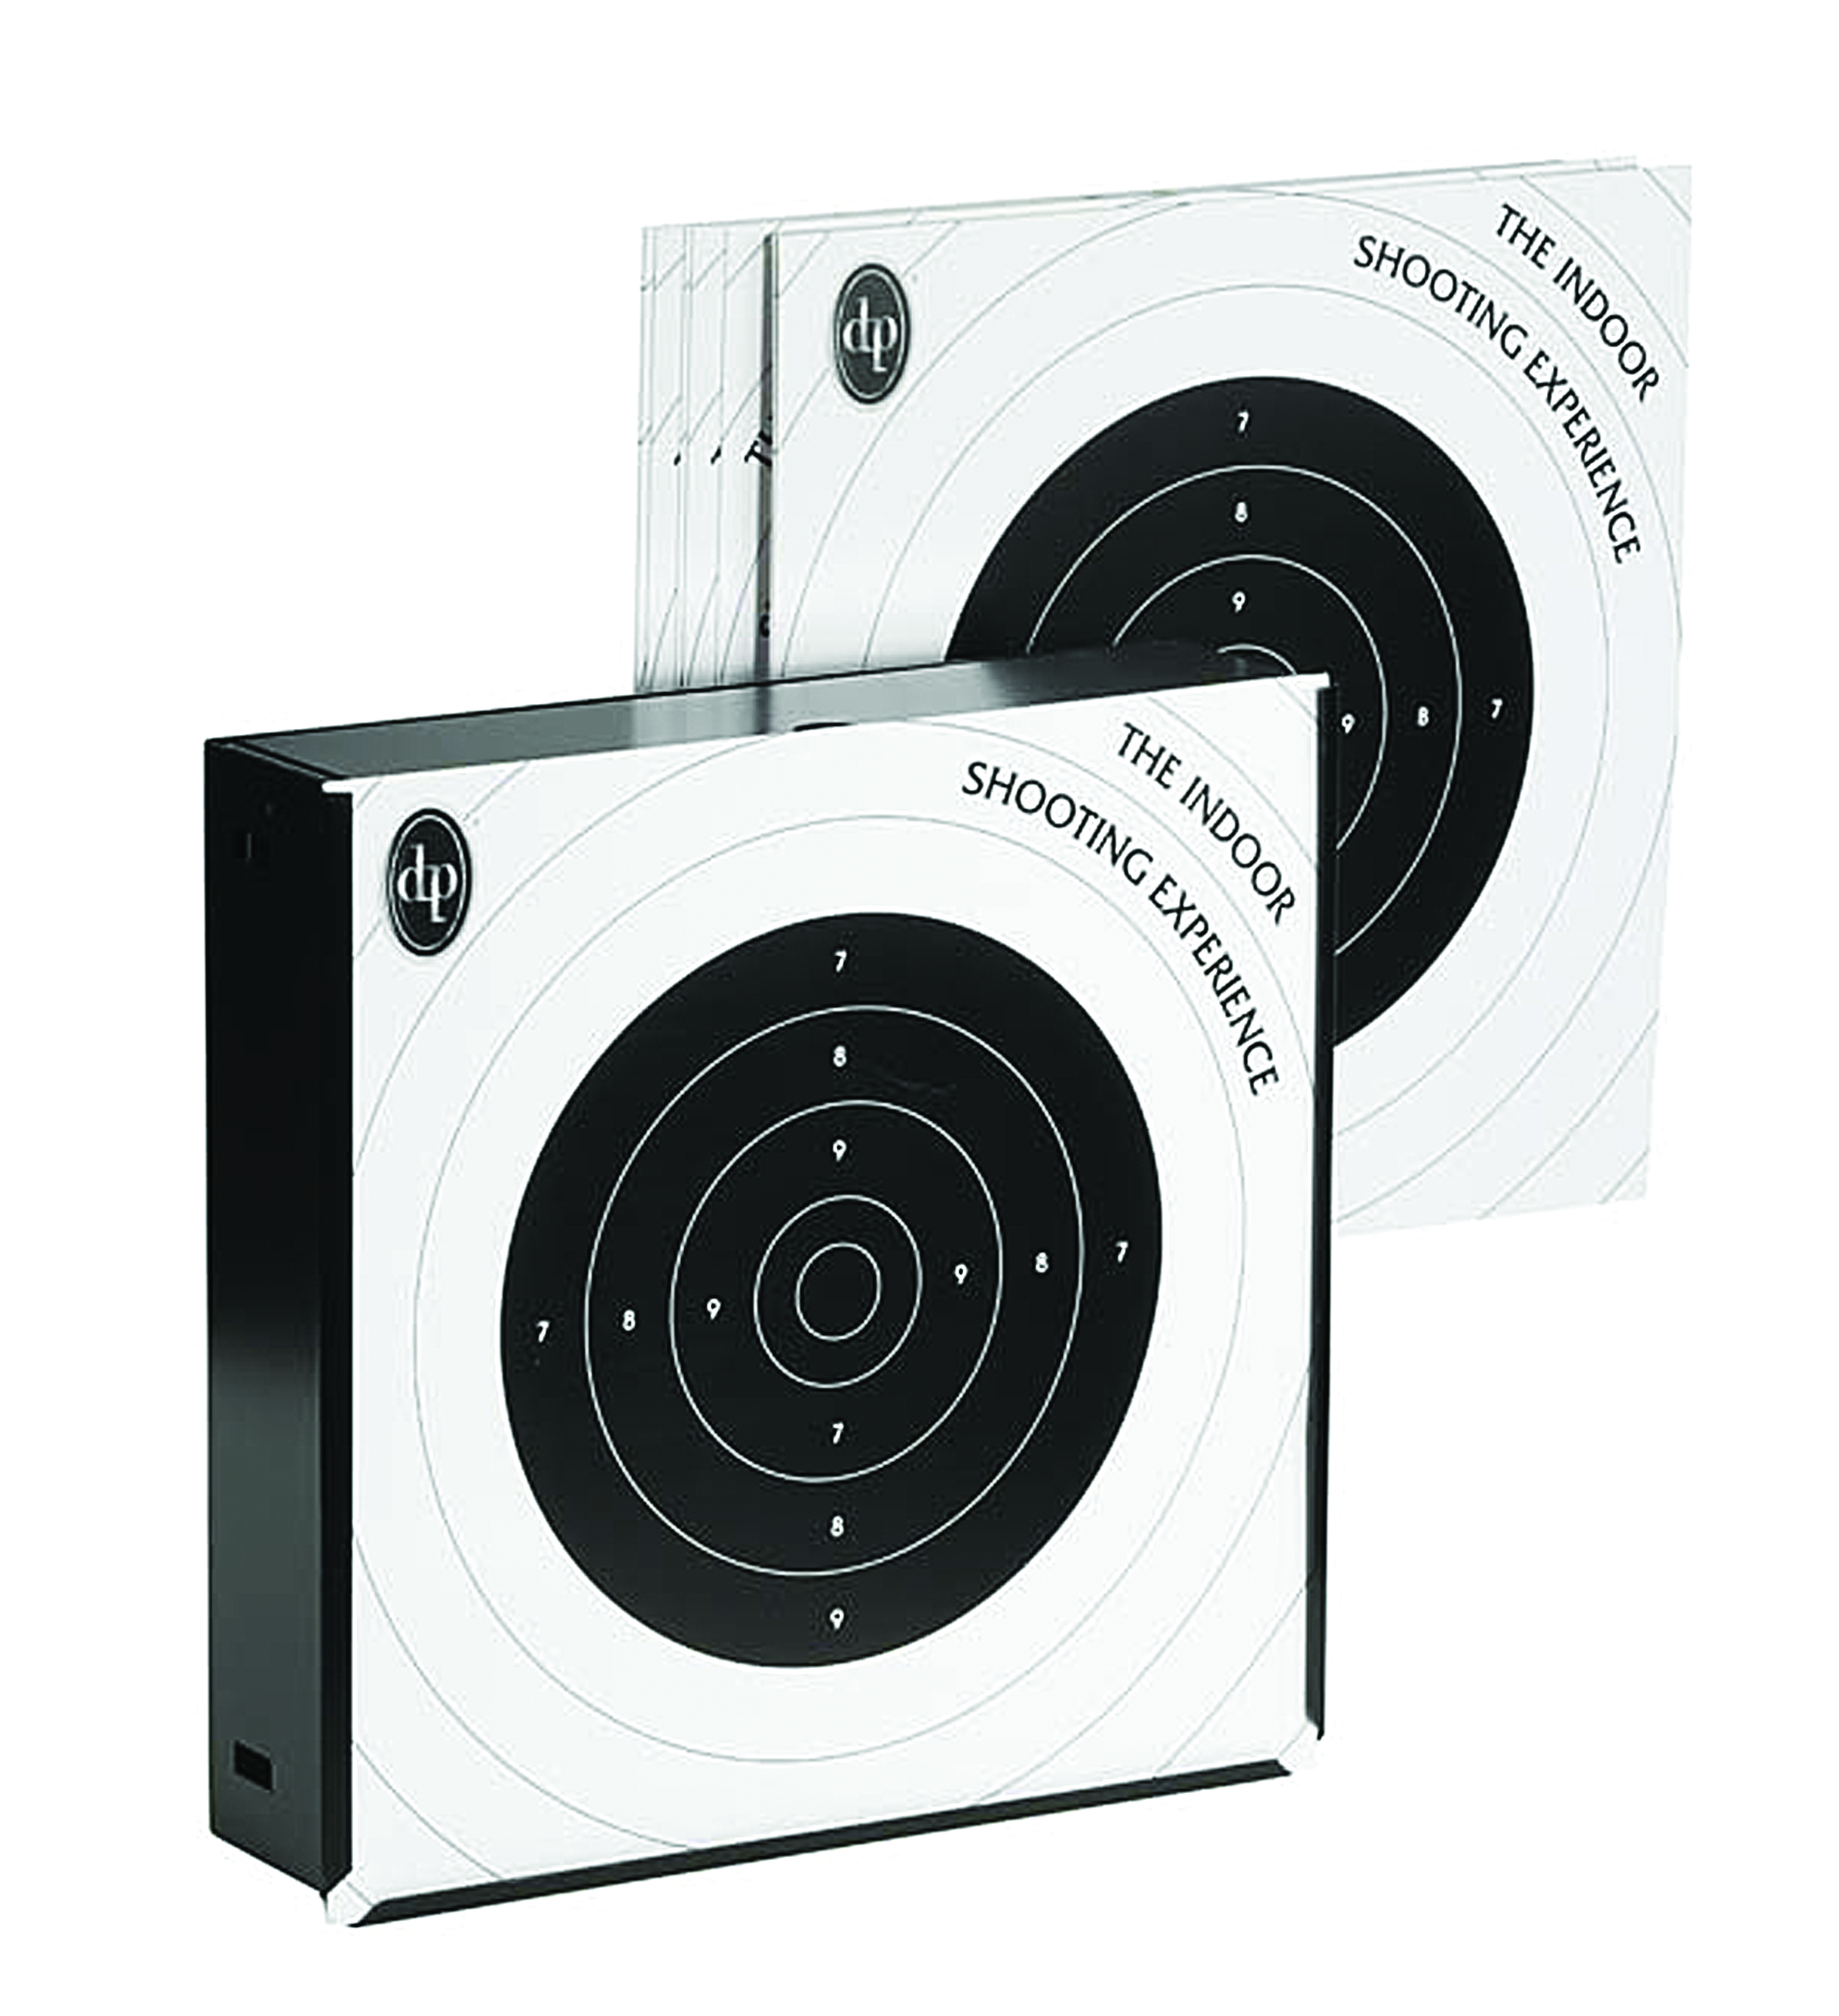 INDOOR TARGET HOLDER with 10 targets